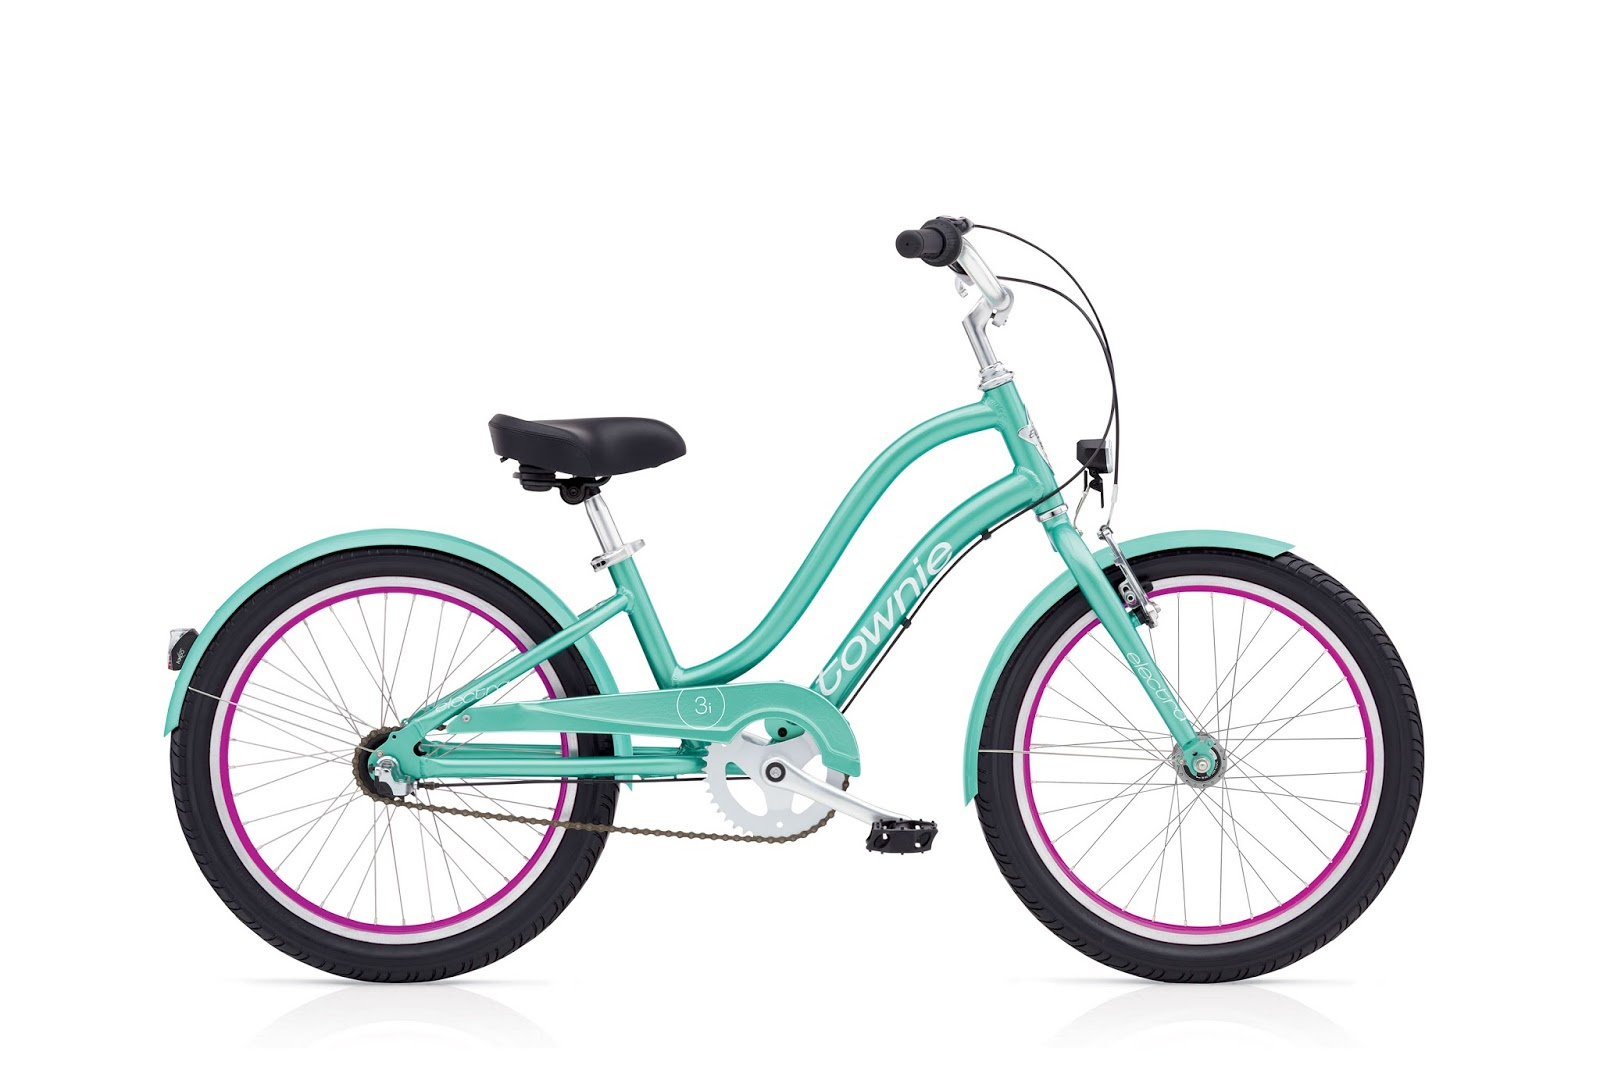 A mint green children's bike with pink accents on the wheels